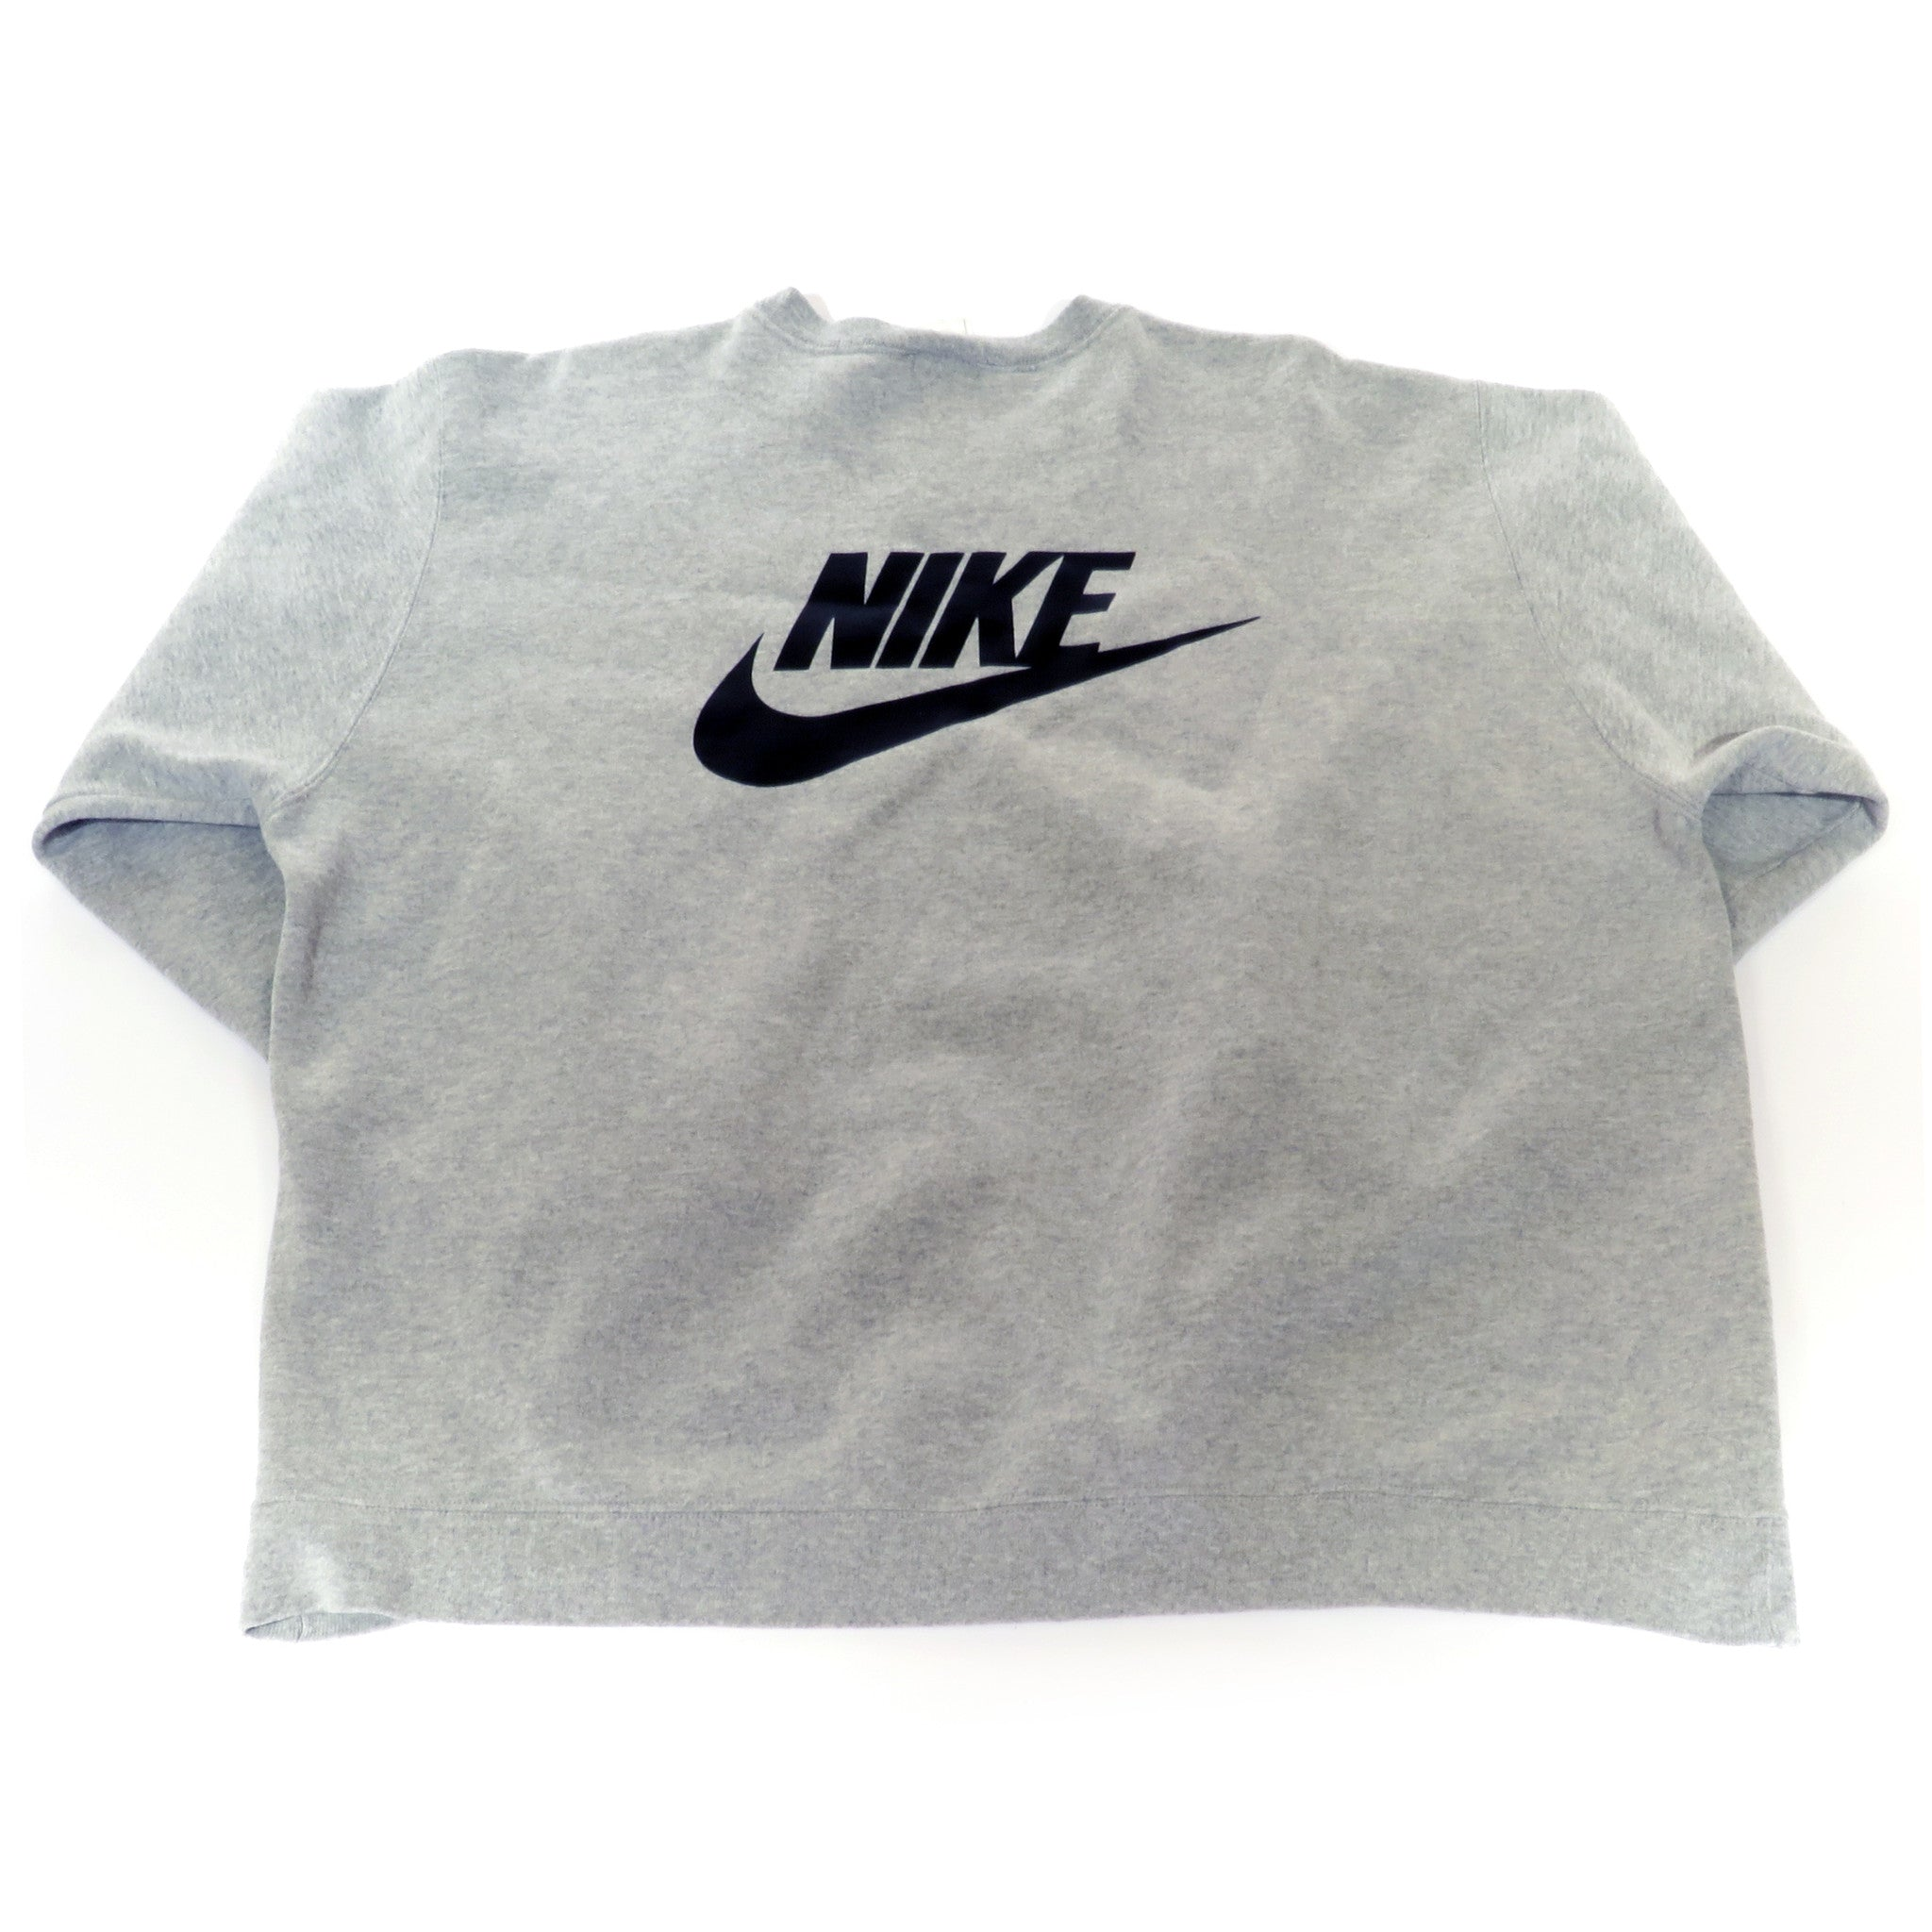 Air Limited Consulting Crewneck Sweatshirt Edge And – Engineering Nike roQWEdCxBe